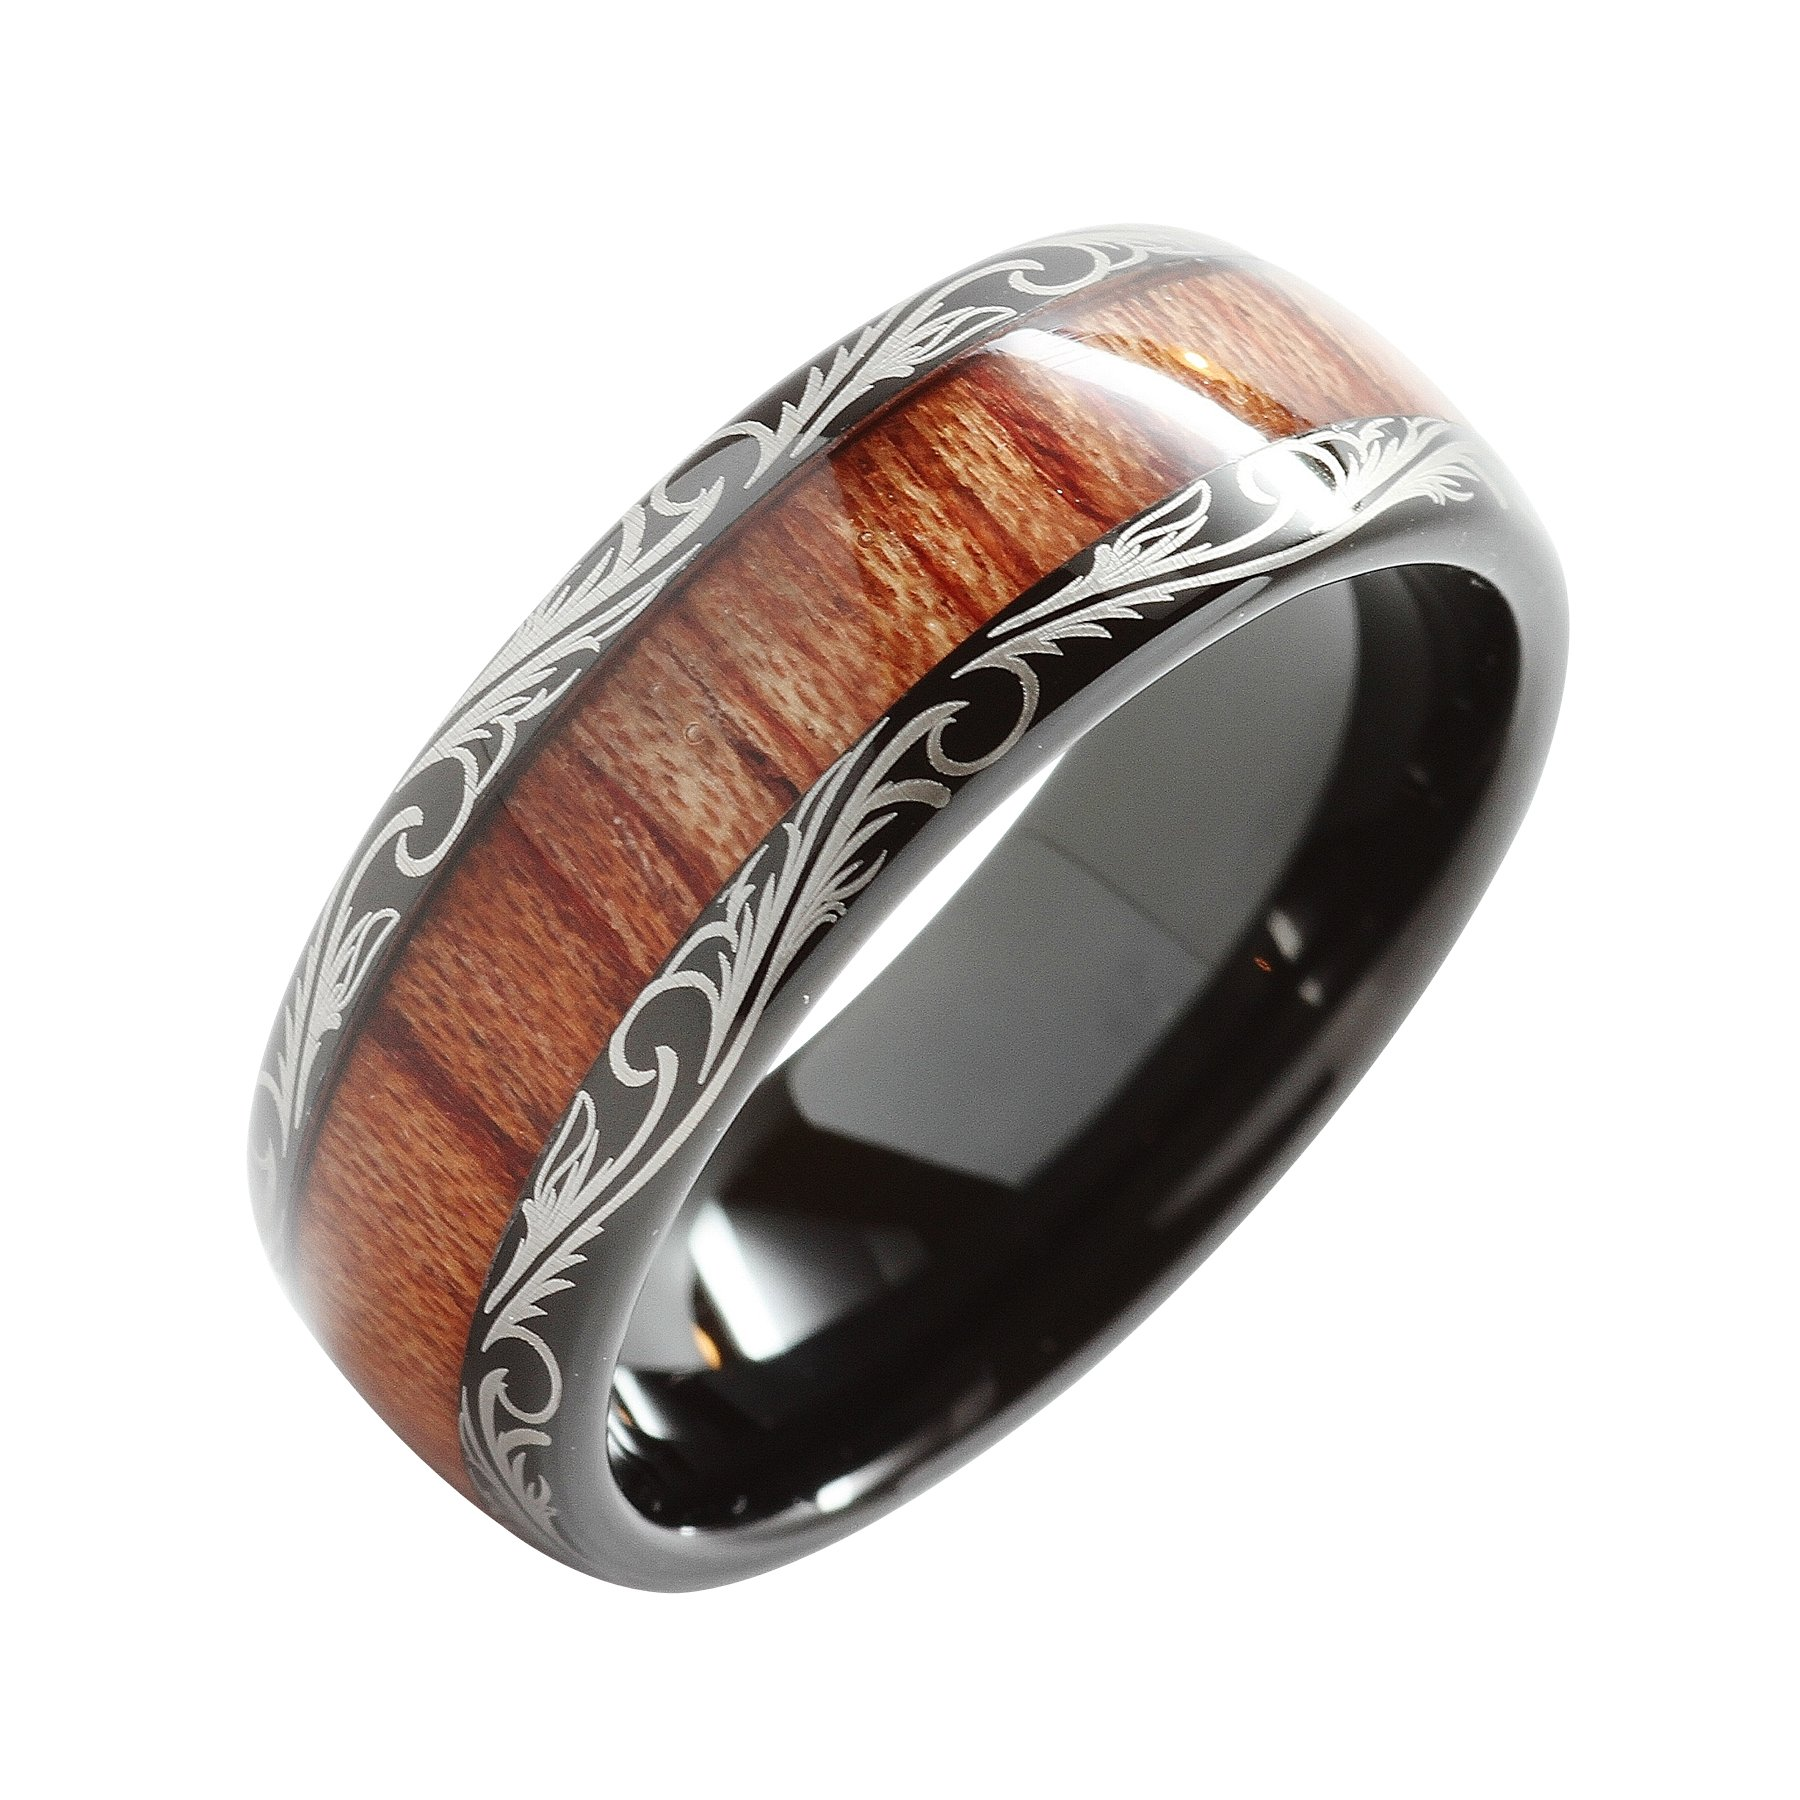 100S JEWELRY Tungsten Rings For Men Wedding Band Koa Wood Inlaid Dome Edge Comfort Fit Size 6-16 (13.5) by 100S JEWELRY